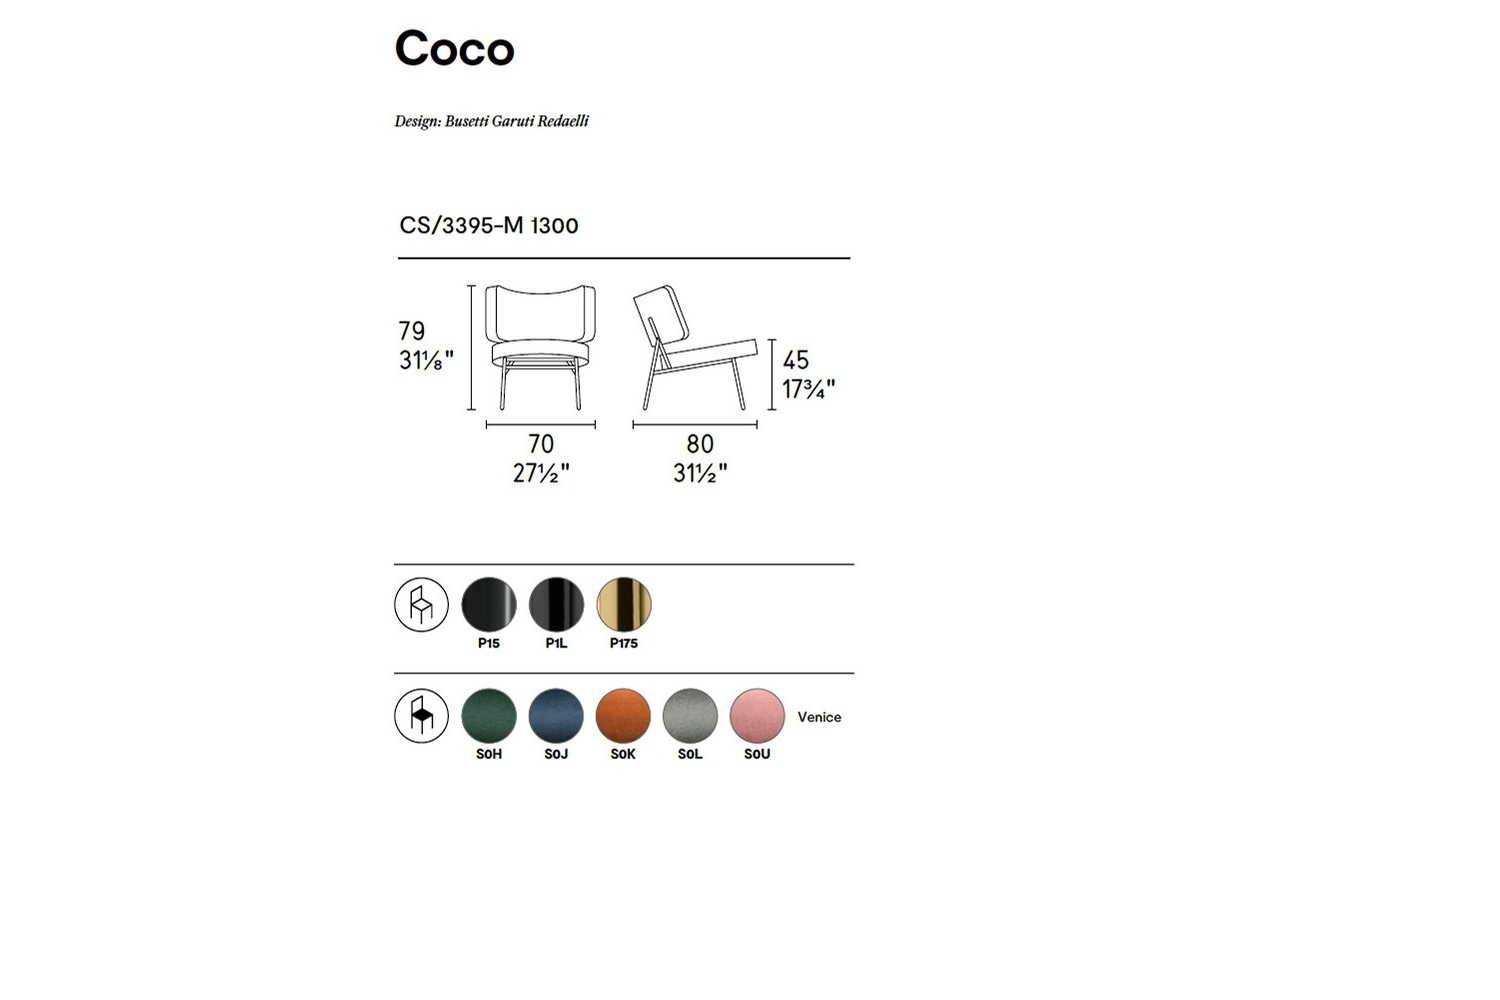 COCO CHAIRS Calligaris Schematics COCO_CHAIRS_Calligaris_Schematics.jpg 2018